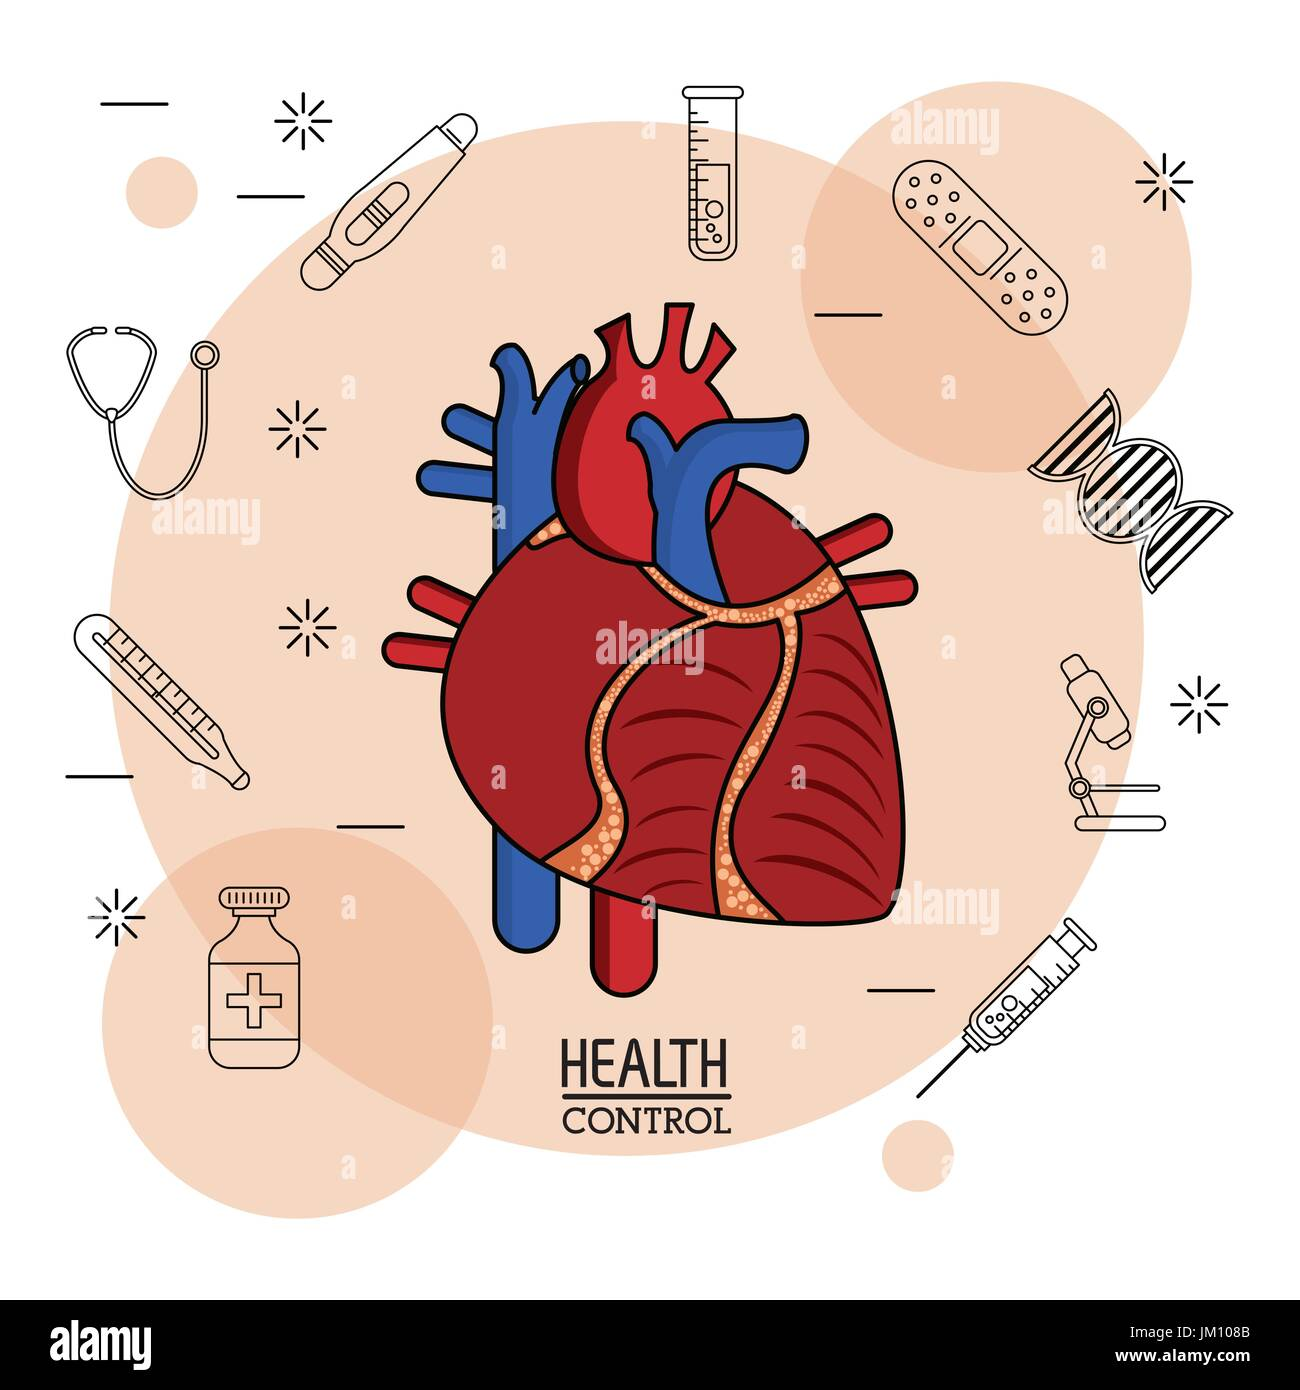 Poster white background with black silhouette icons of health control in background and colorful cardiovascular - Stock Image